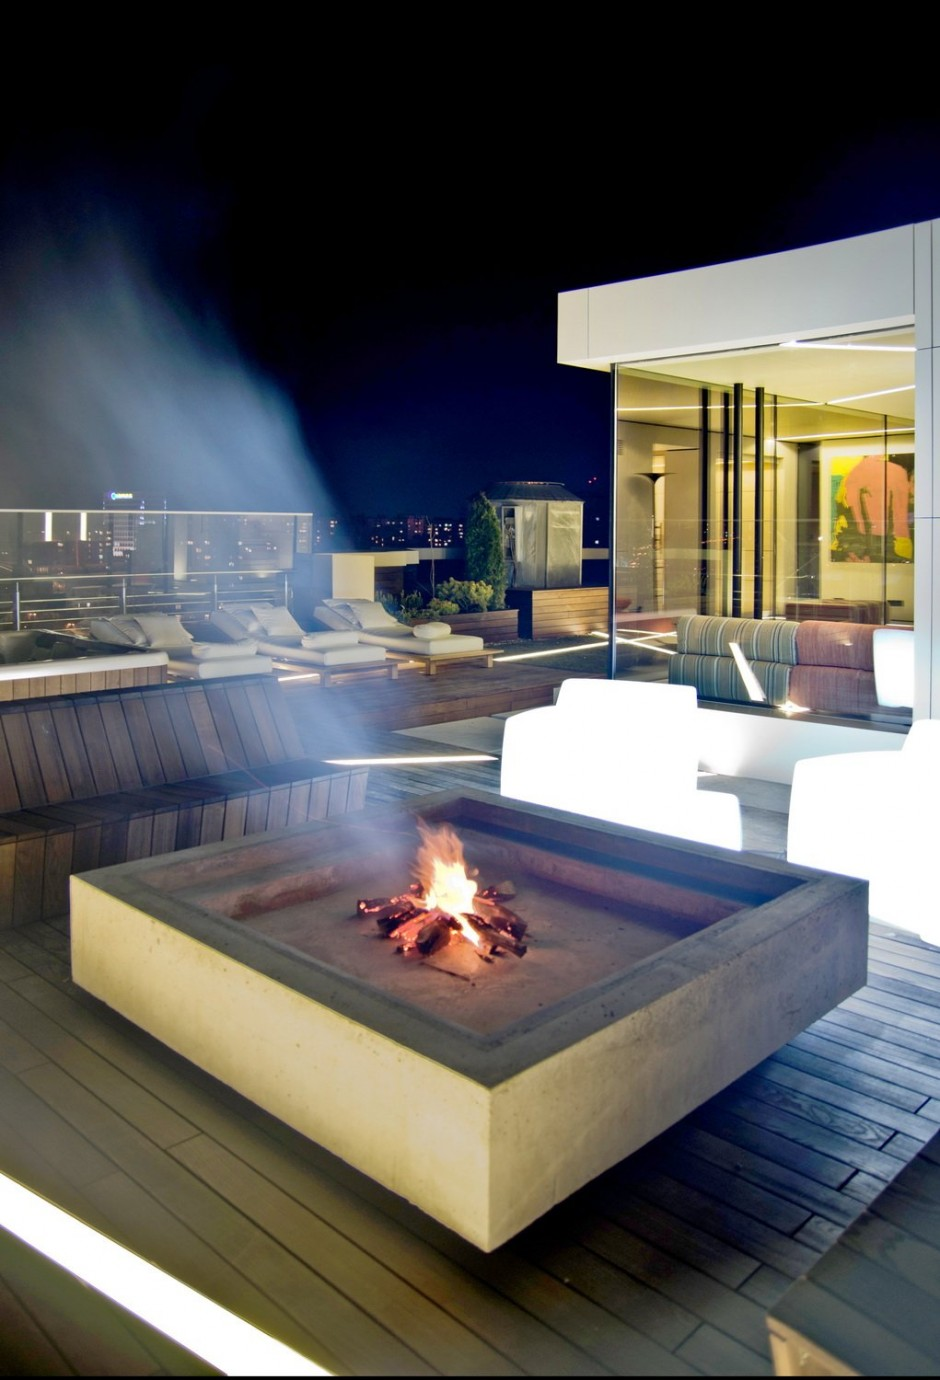 1570787784 701 the 12 best fire pits for the perfect outdoor setup - The 12 Best Fire Pits For The Perfect Outdoor Setup